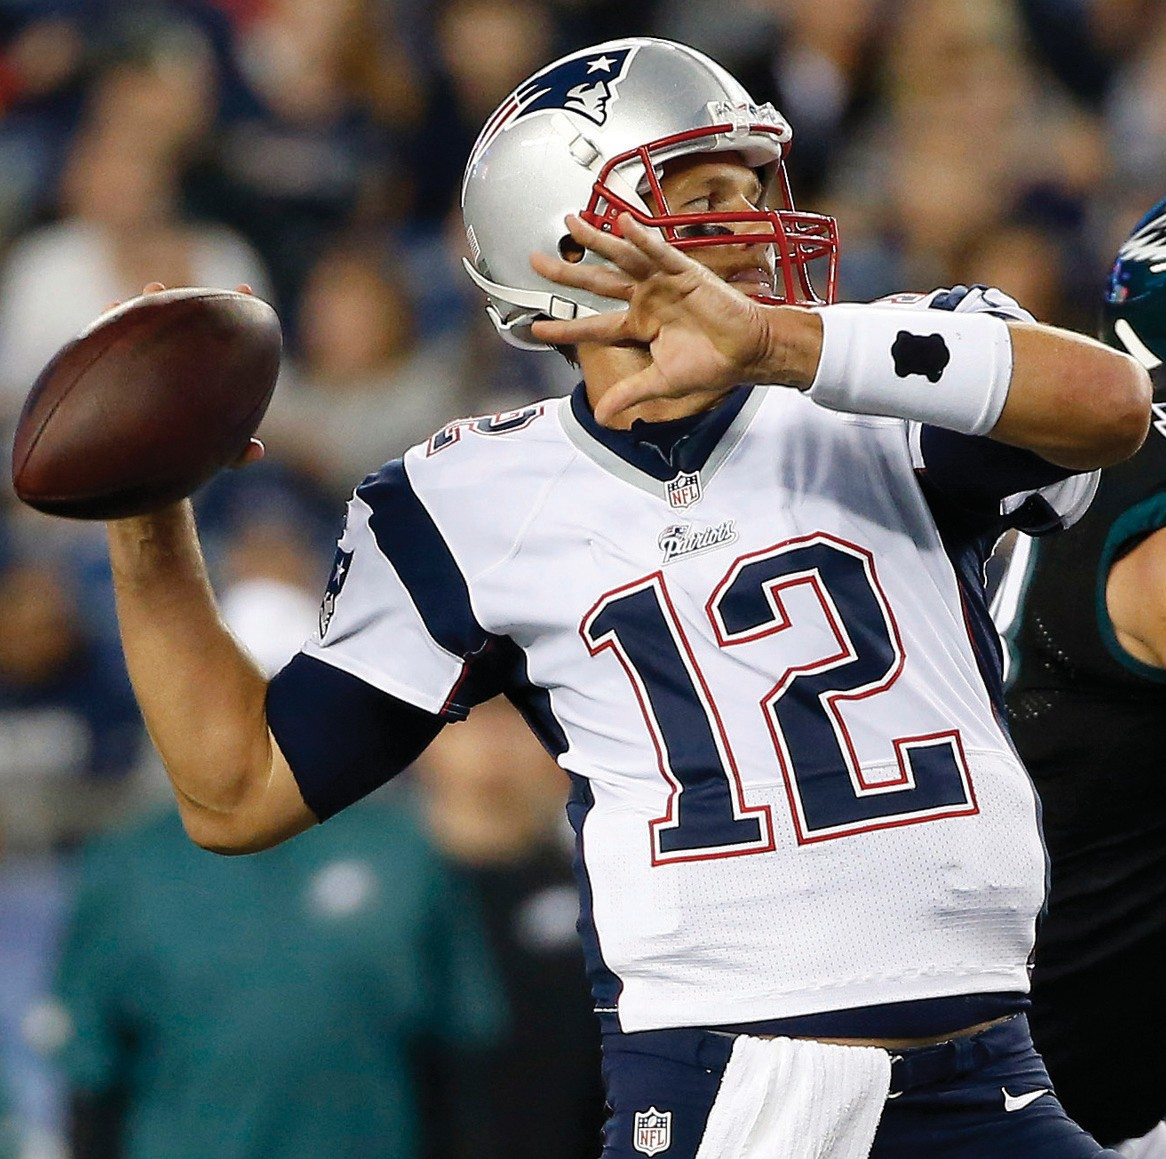 In this Aug. 15, 2014, file photo, New England Patriots quarterback Tom Brady (12) throws a pass against the Philadelphia Eagles during the first quarter of a preseason NFL football game in Foxborough, Mass.